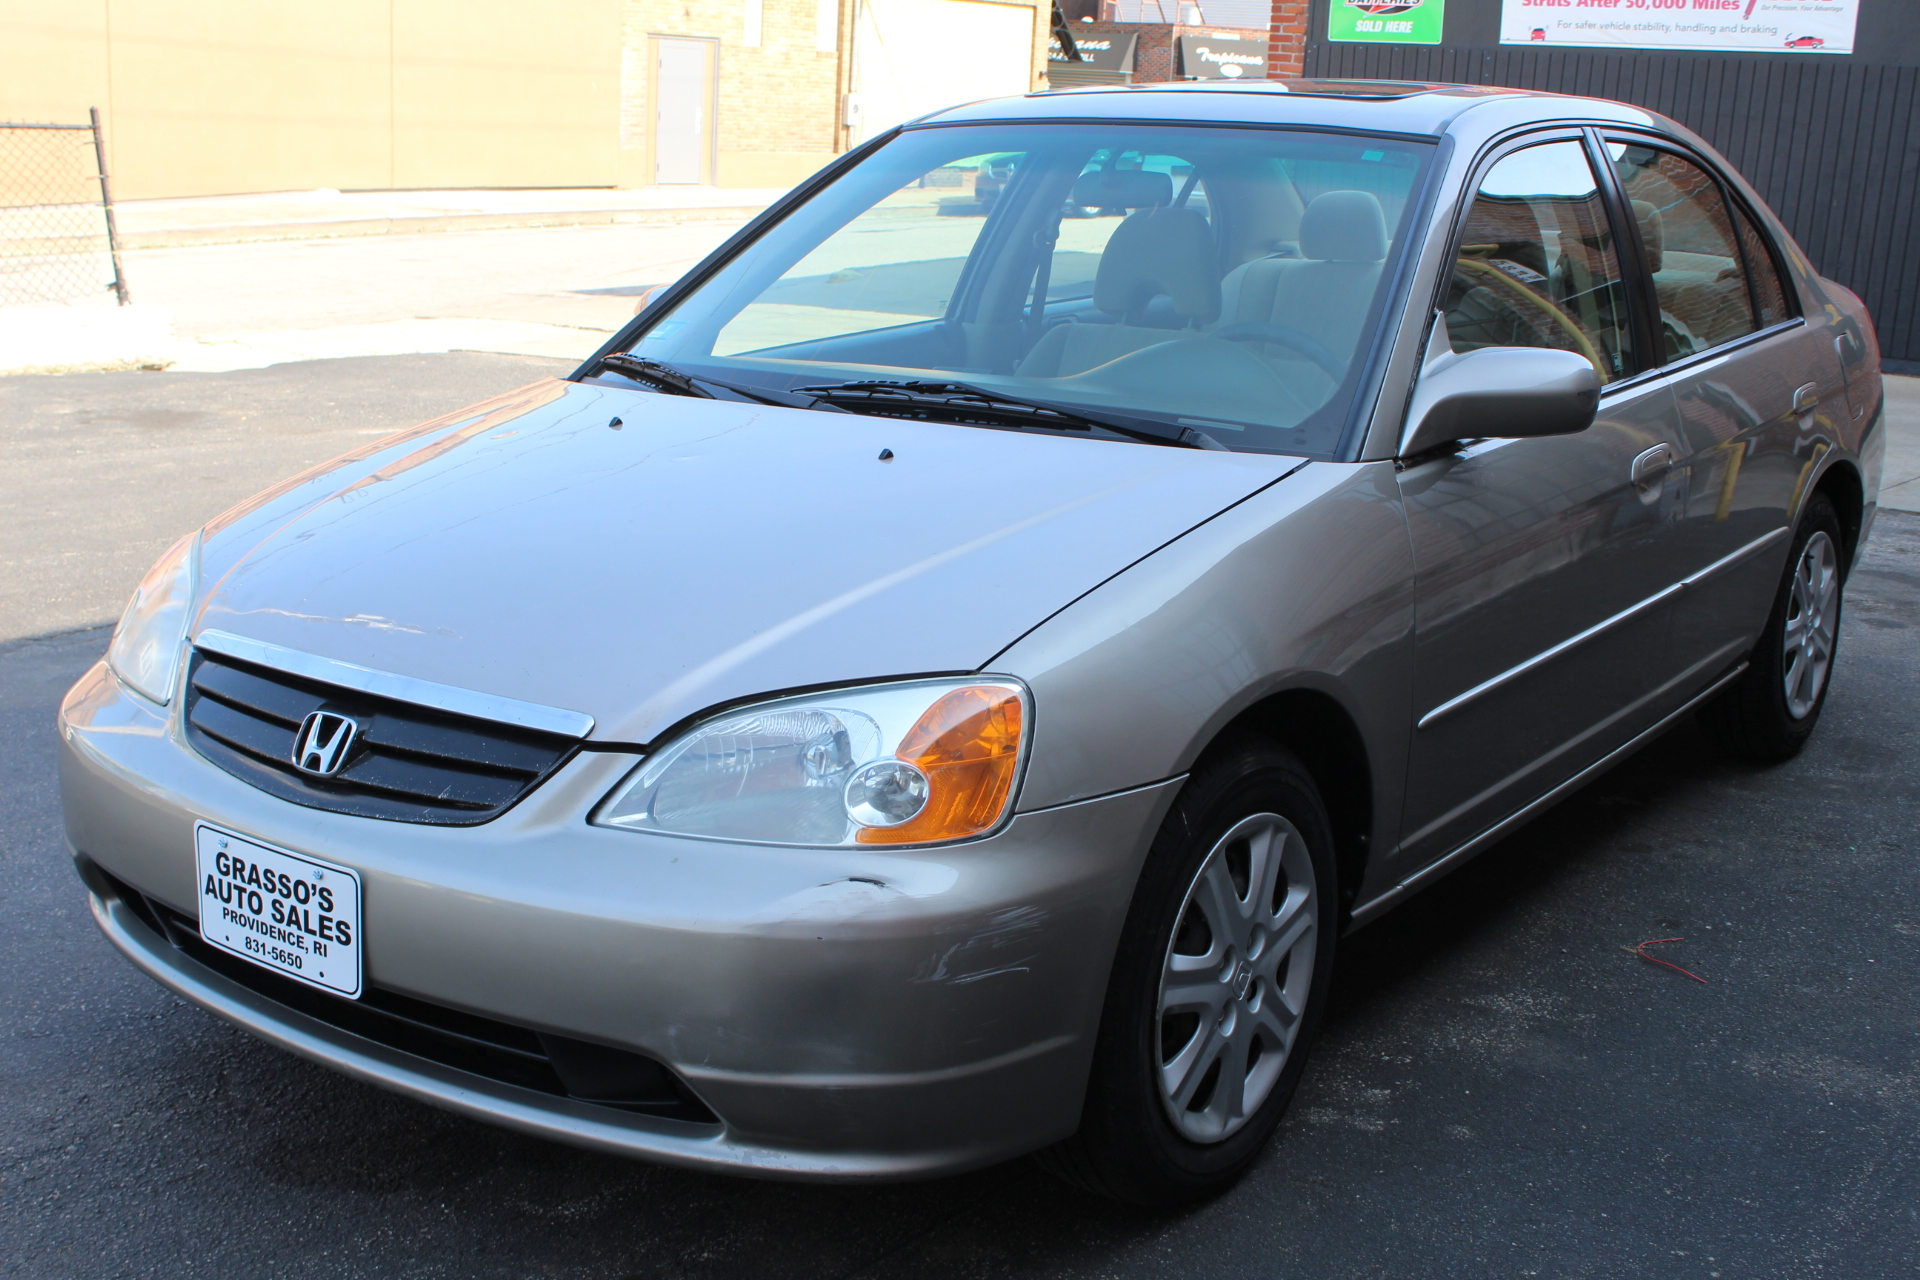 2003 Honda Civic 4dr Sdn EX Auto ONE OWNER  NO ACCIDENTS  DETAILED SERVICE RECORDS  COMPLETELY